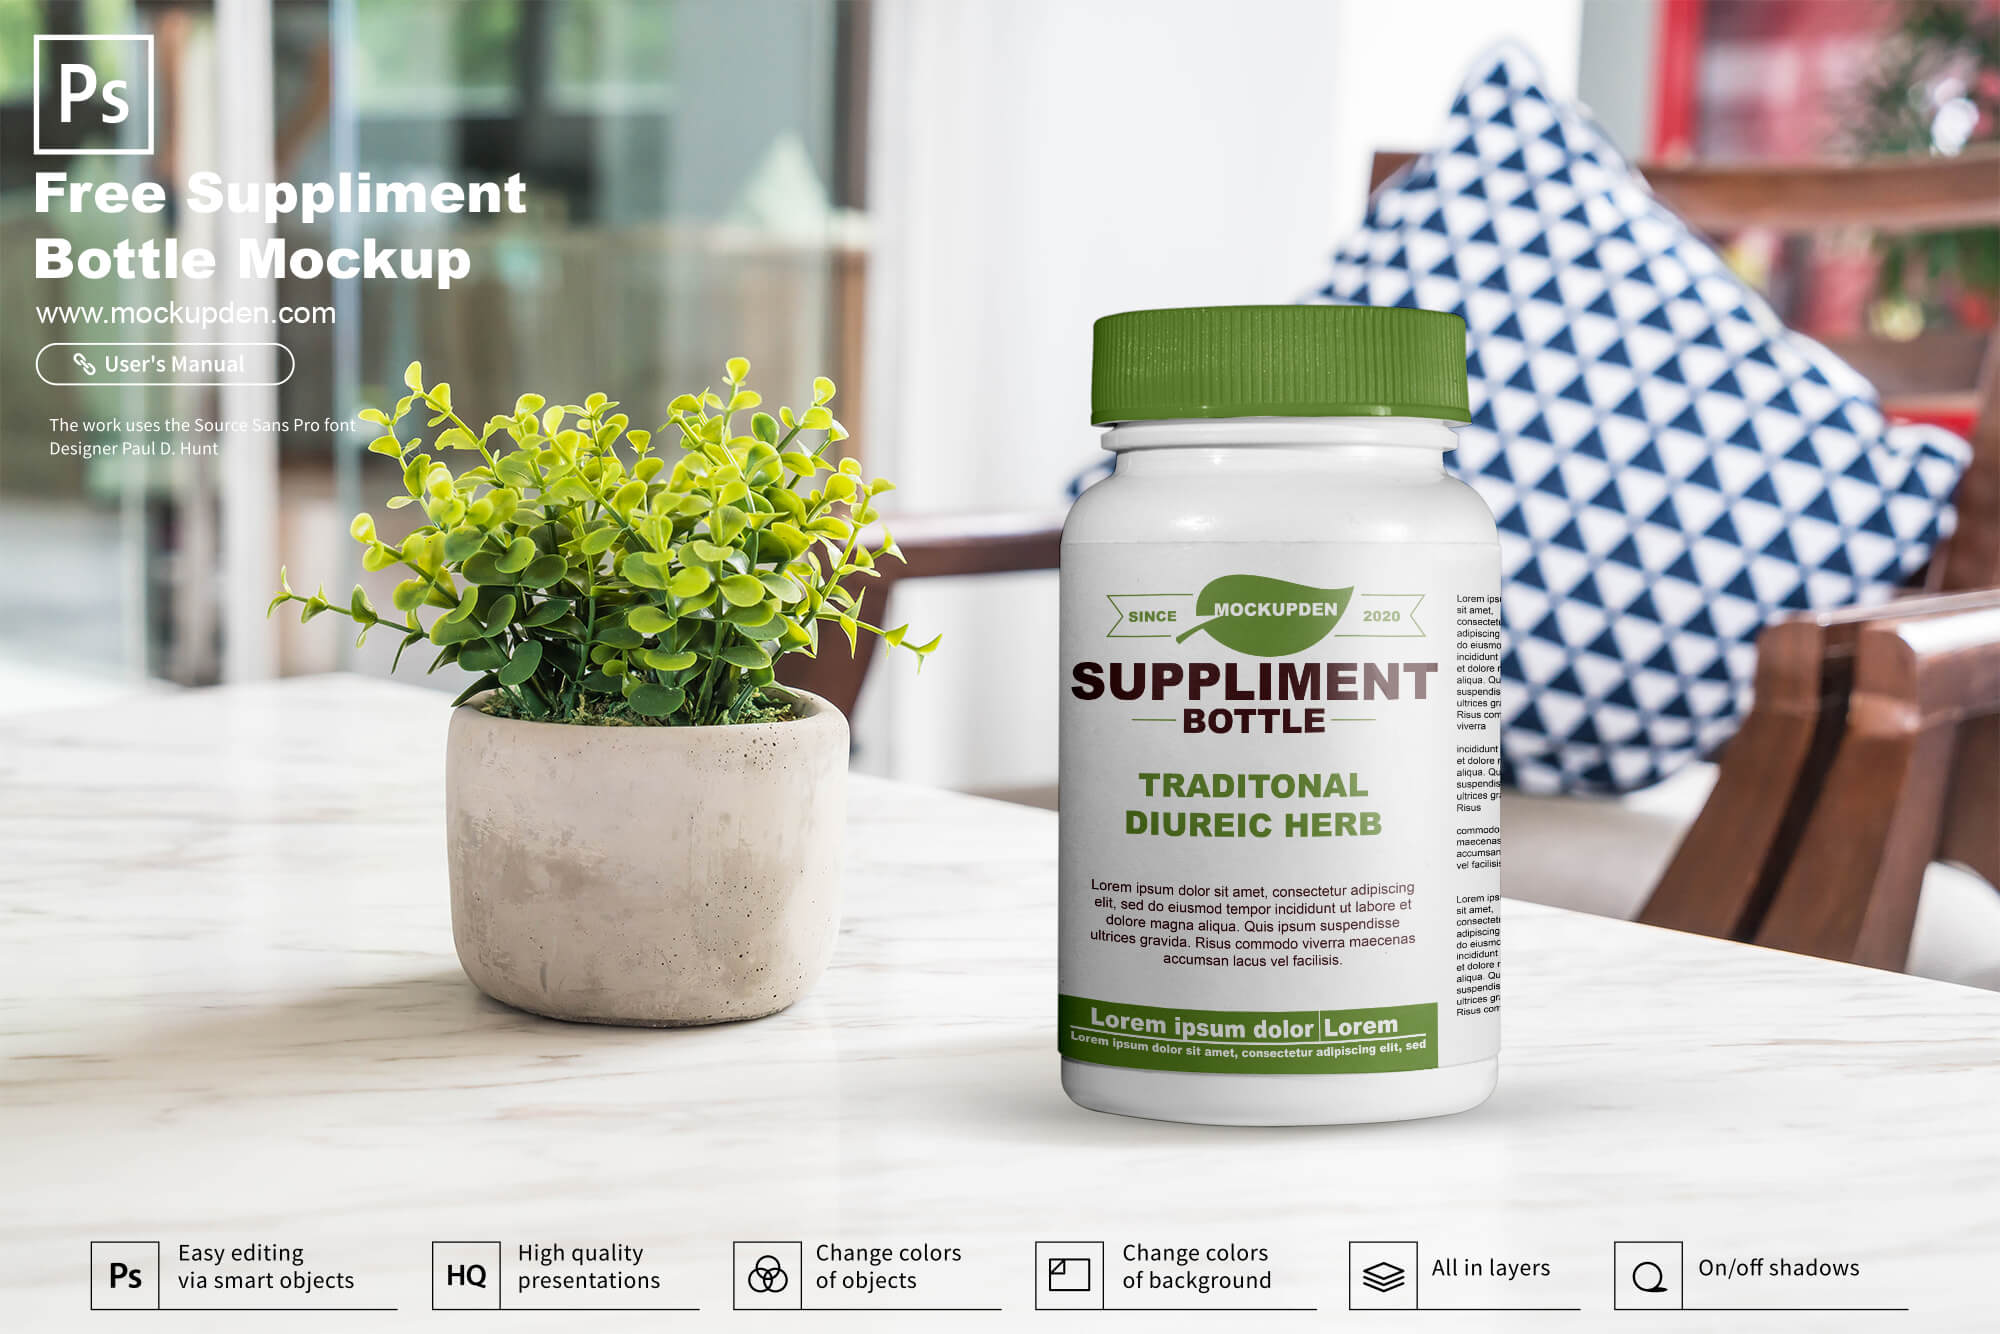 Free Suppliment Bottle Mockup PSD Template